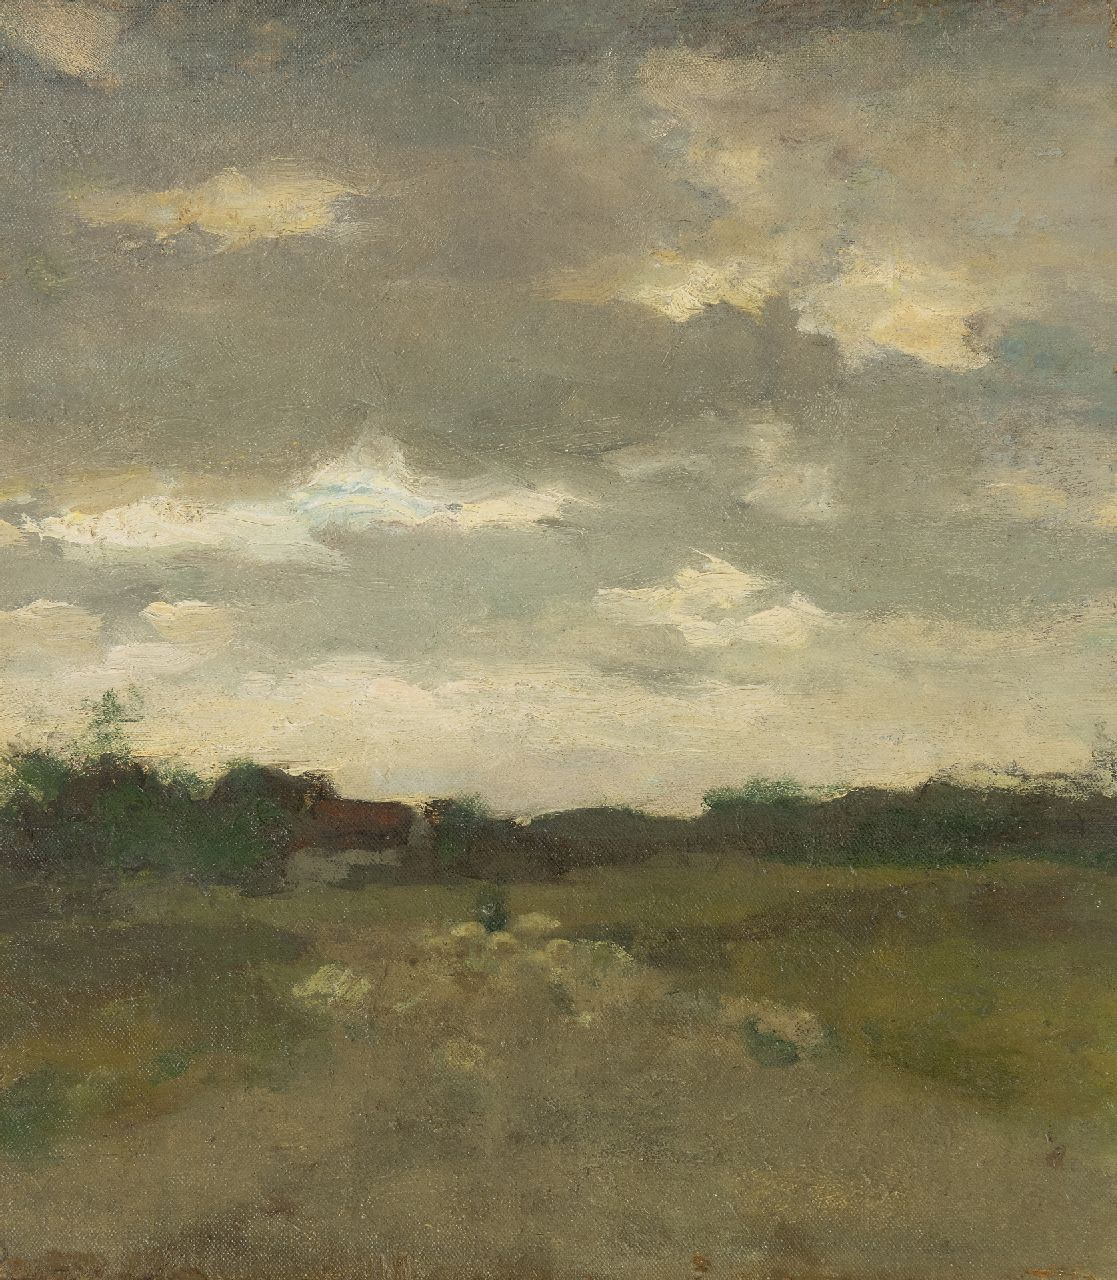 Weissenbruch H.J.  | Hendrik Johannes 'J.H.' Weissenbruch | Paintings offered for sale | Landscape with sheep near Waalsdorp, oil on canvas laid down on panel 35.5 x 31.0 cm, painted ca. 1895